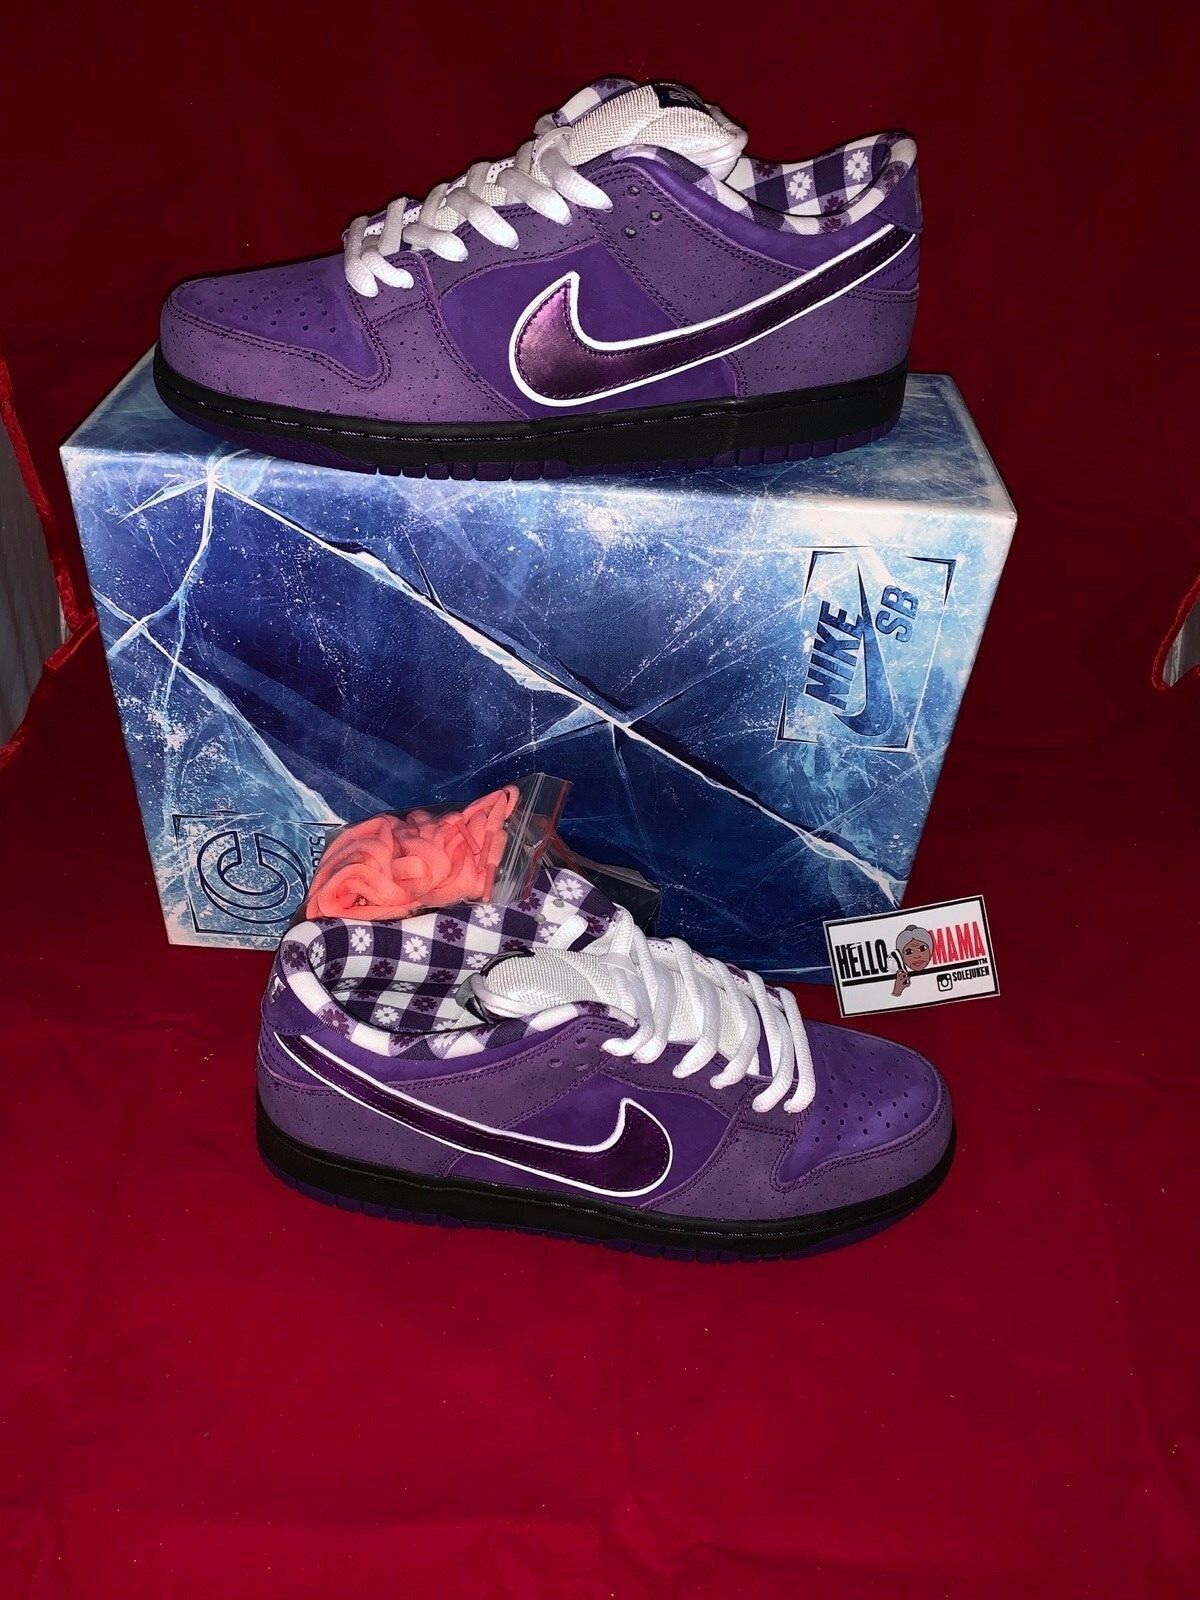 NIKE SB X CONCEPTS DUNK LOW PURPLE LOBSTER 2018 SPECIAL BOX - in hand